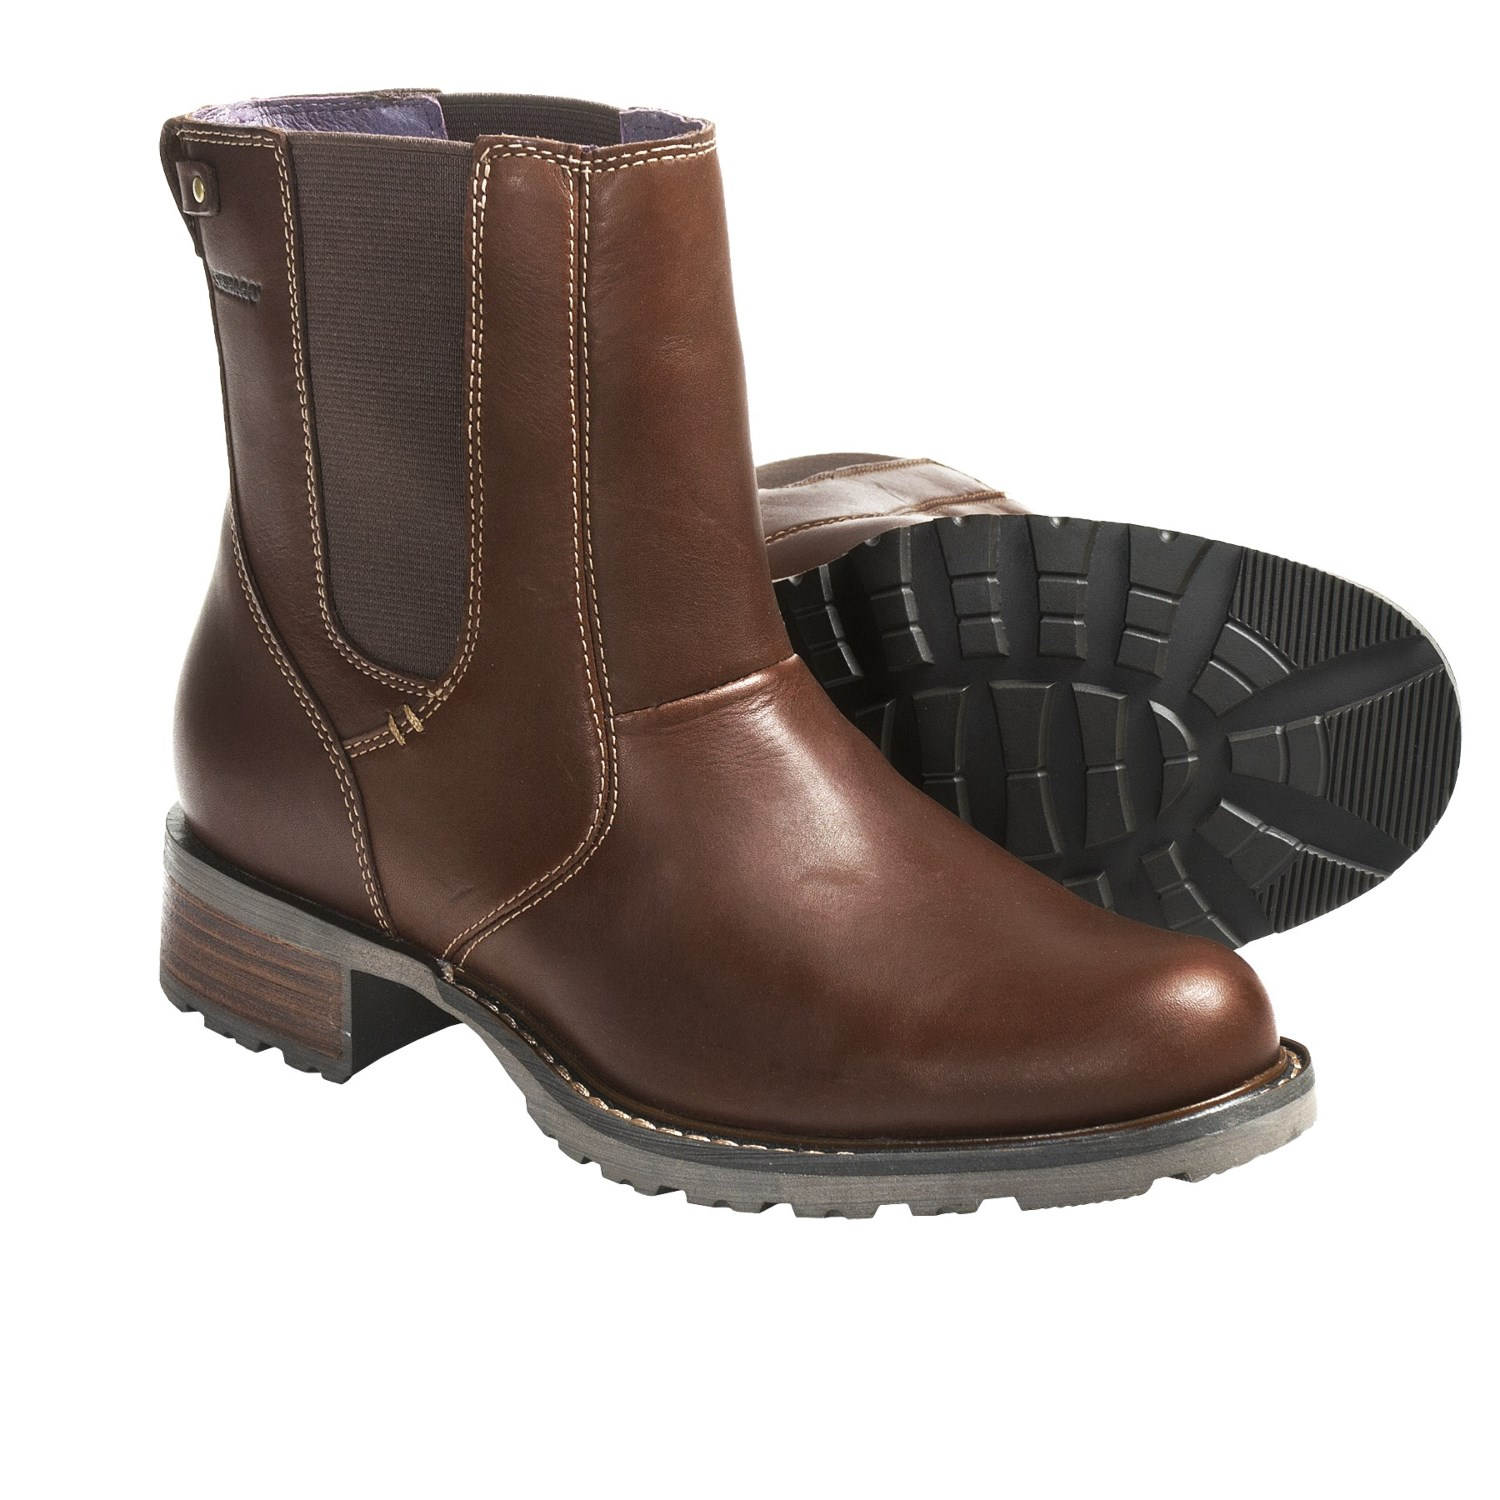 Waterproof Ankle Boots Vbs3e74s